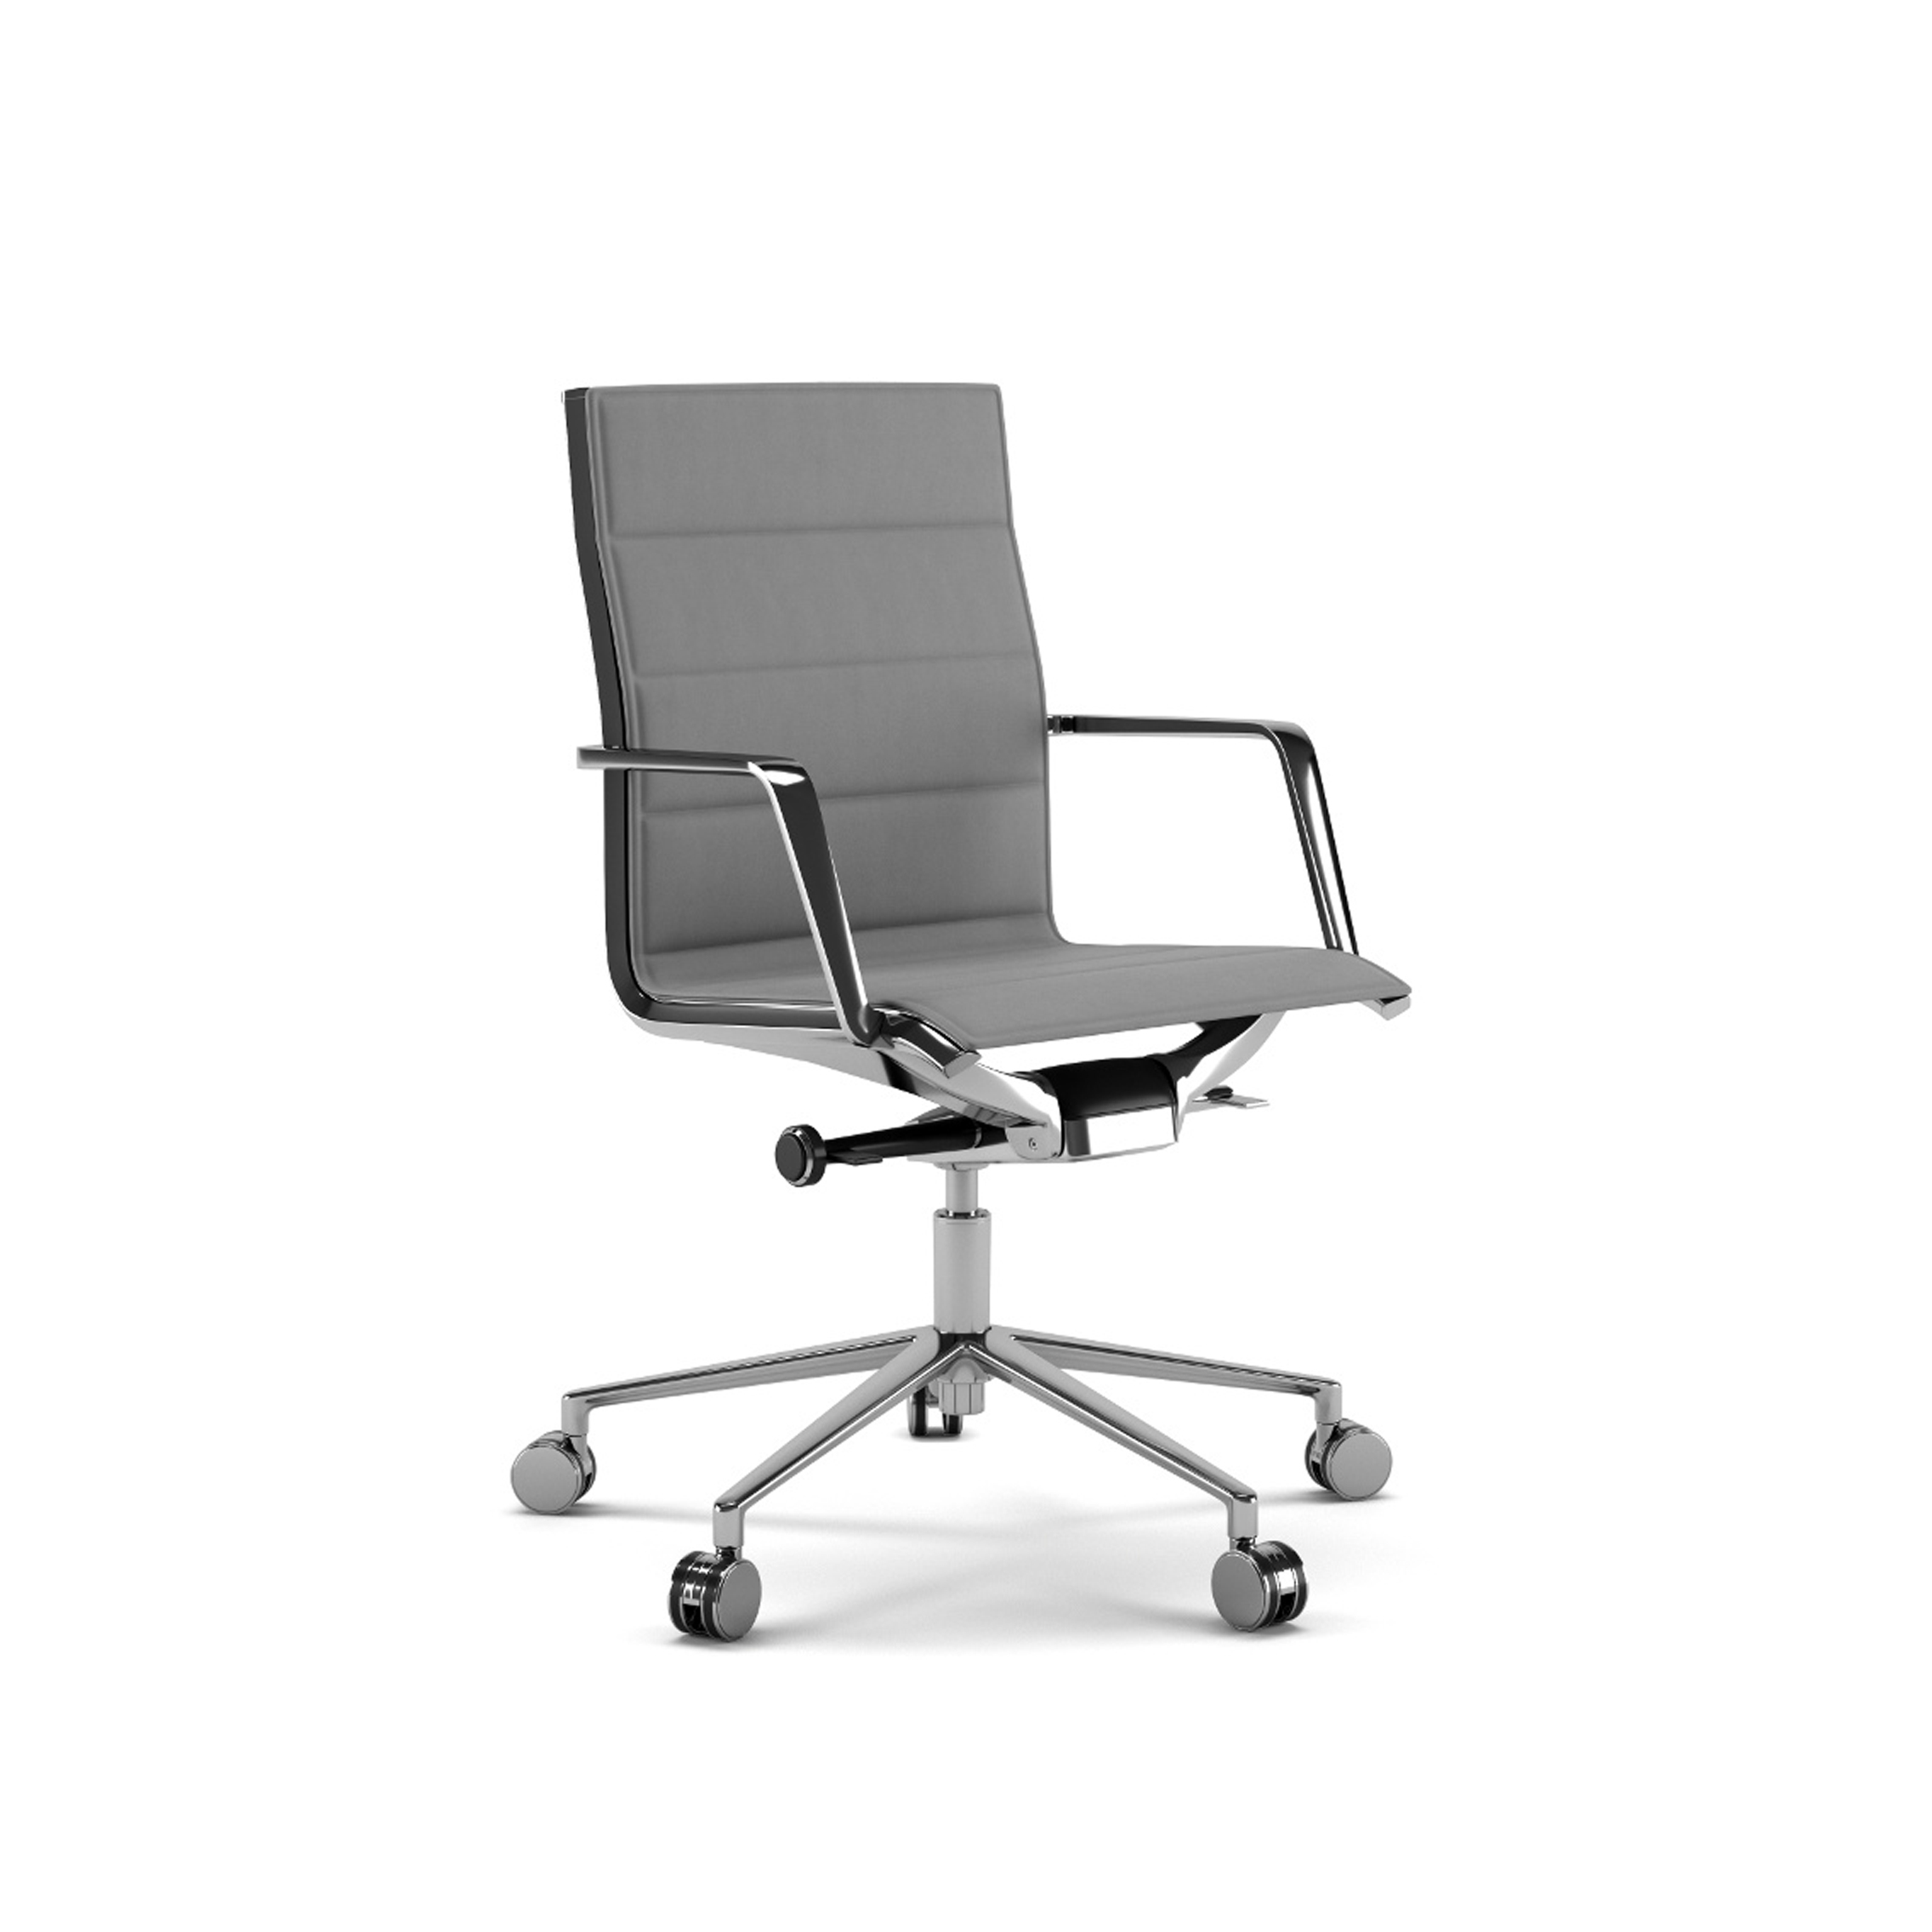 02S_Estel_Comfort&Relax_Office-chair&contract-conference_Aluminia